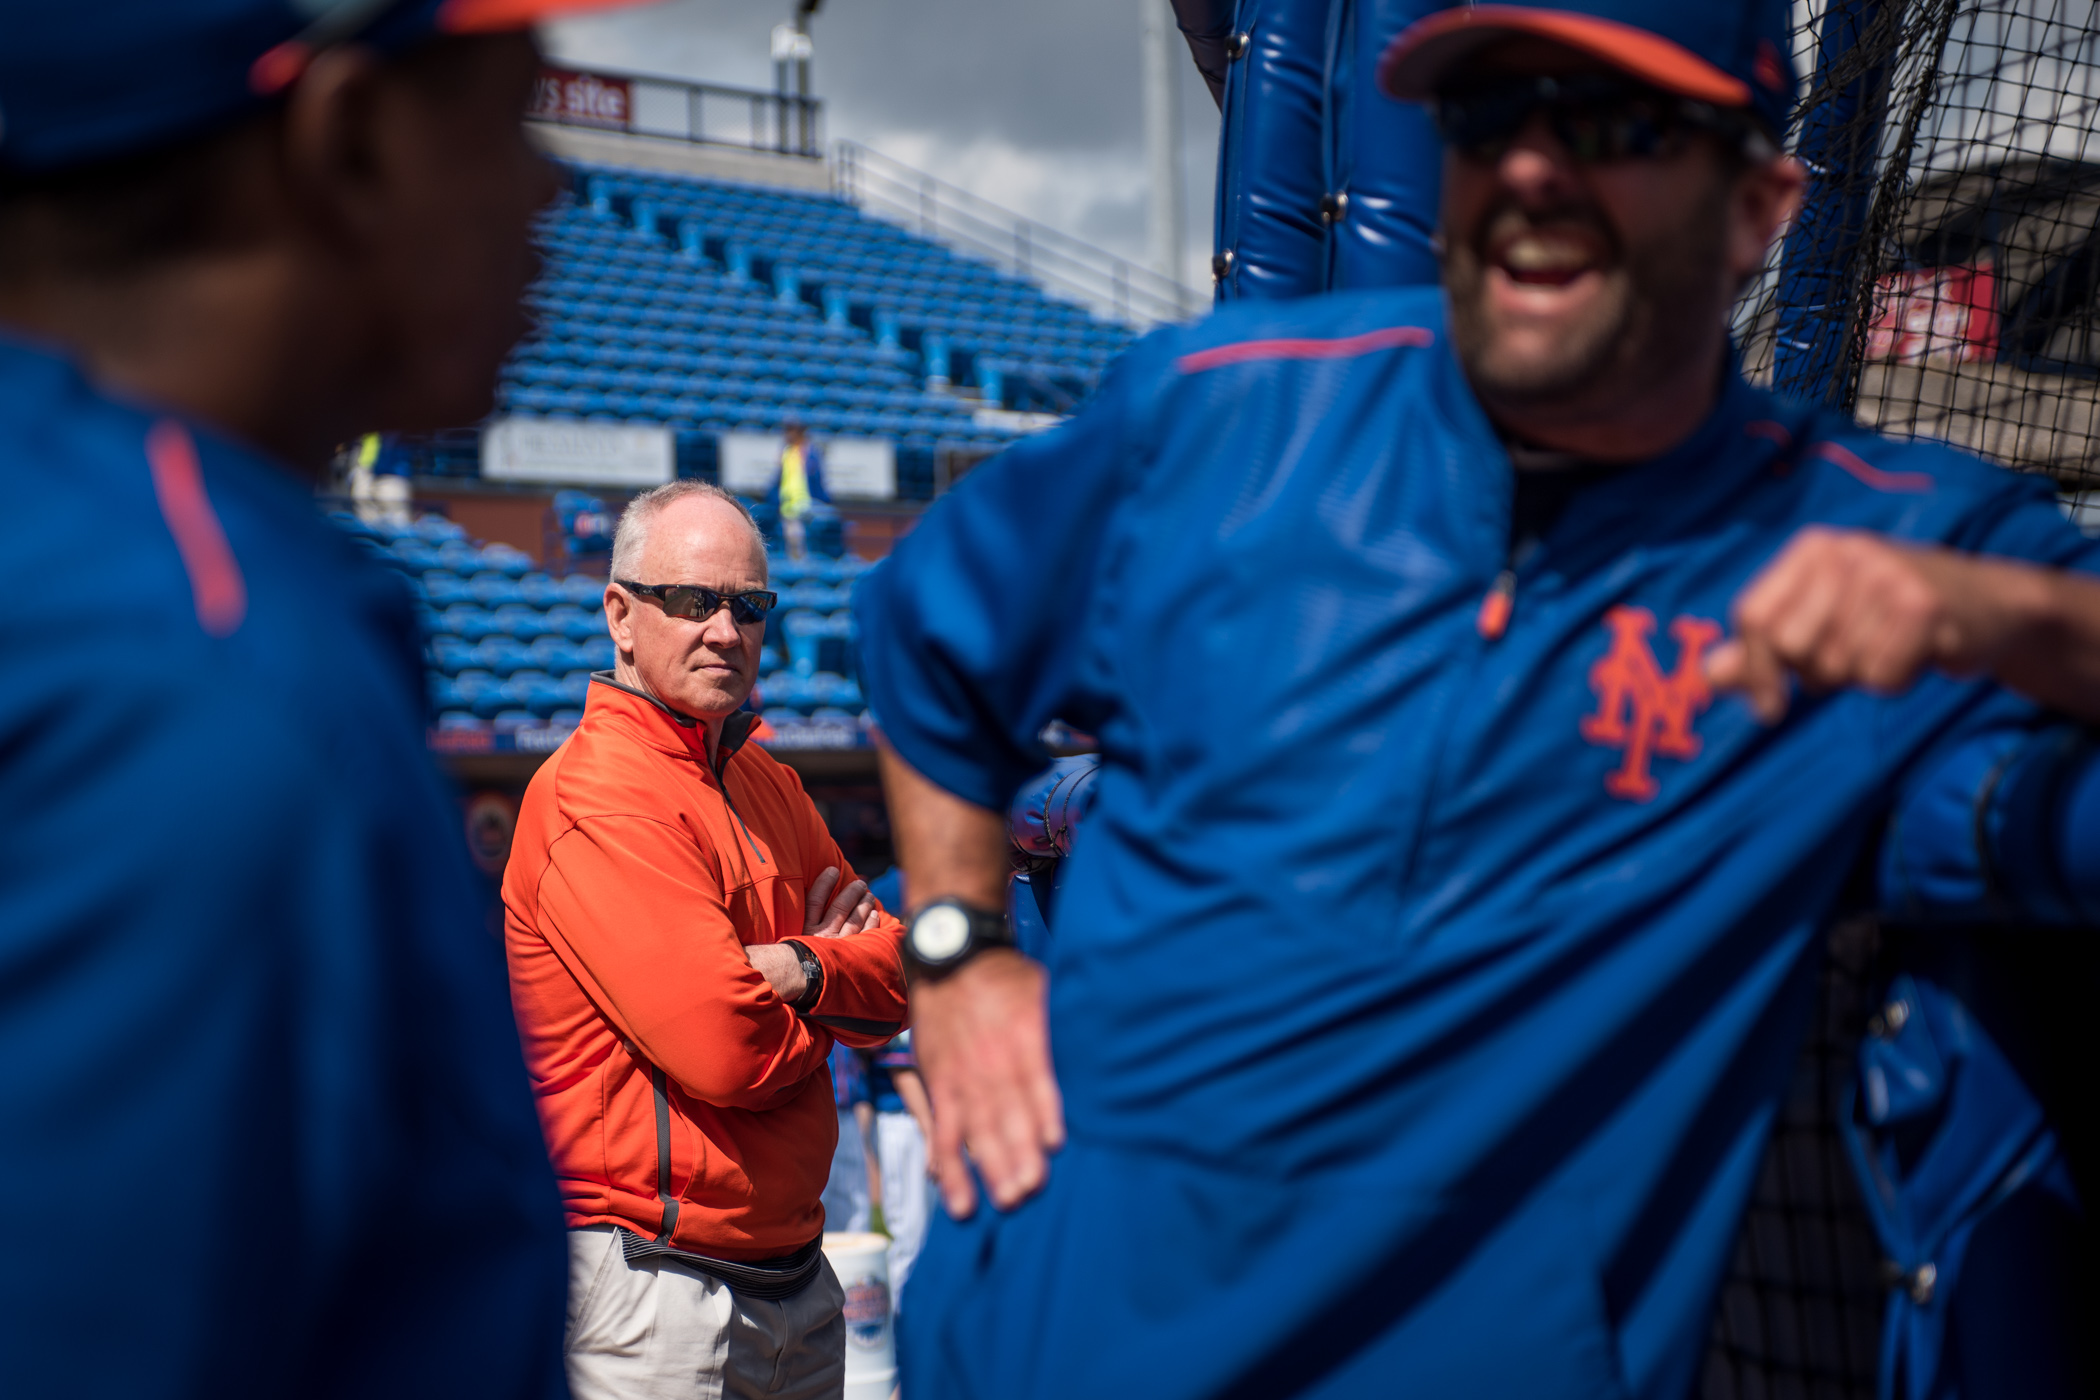 New York Mets General Manager Sandy Alderson watches the Mets during spring training batting practice inside First Data Field in Port St. Lucie, Fla., on Sunday, March 5. (Michael Ares for The New York Times)